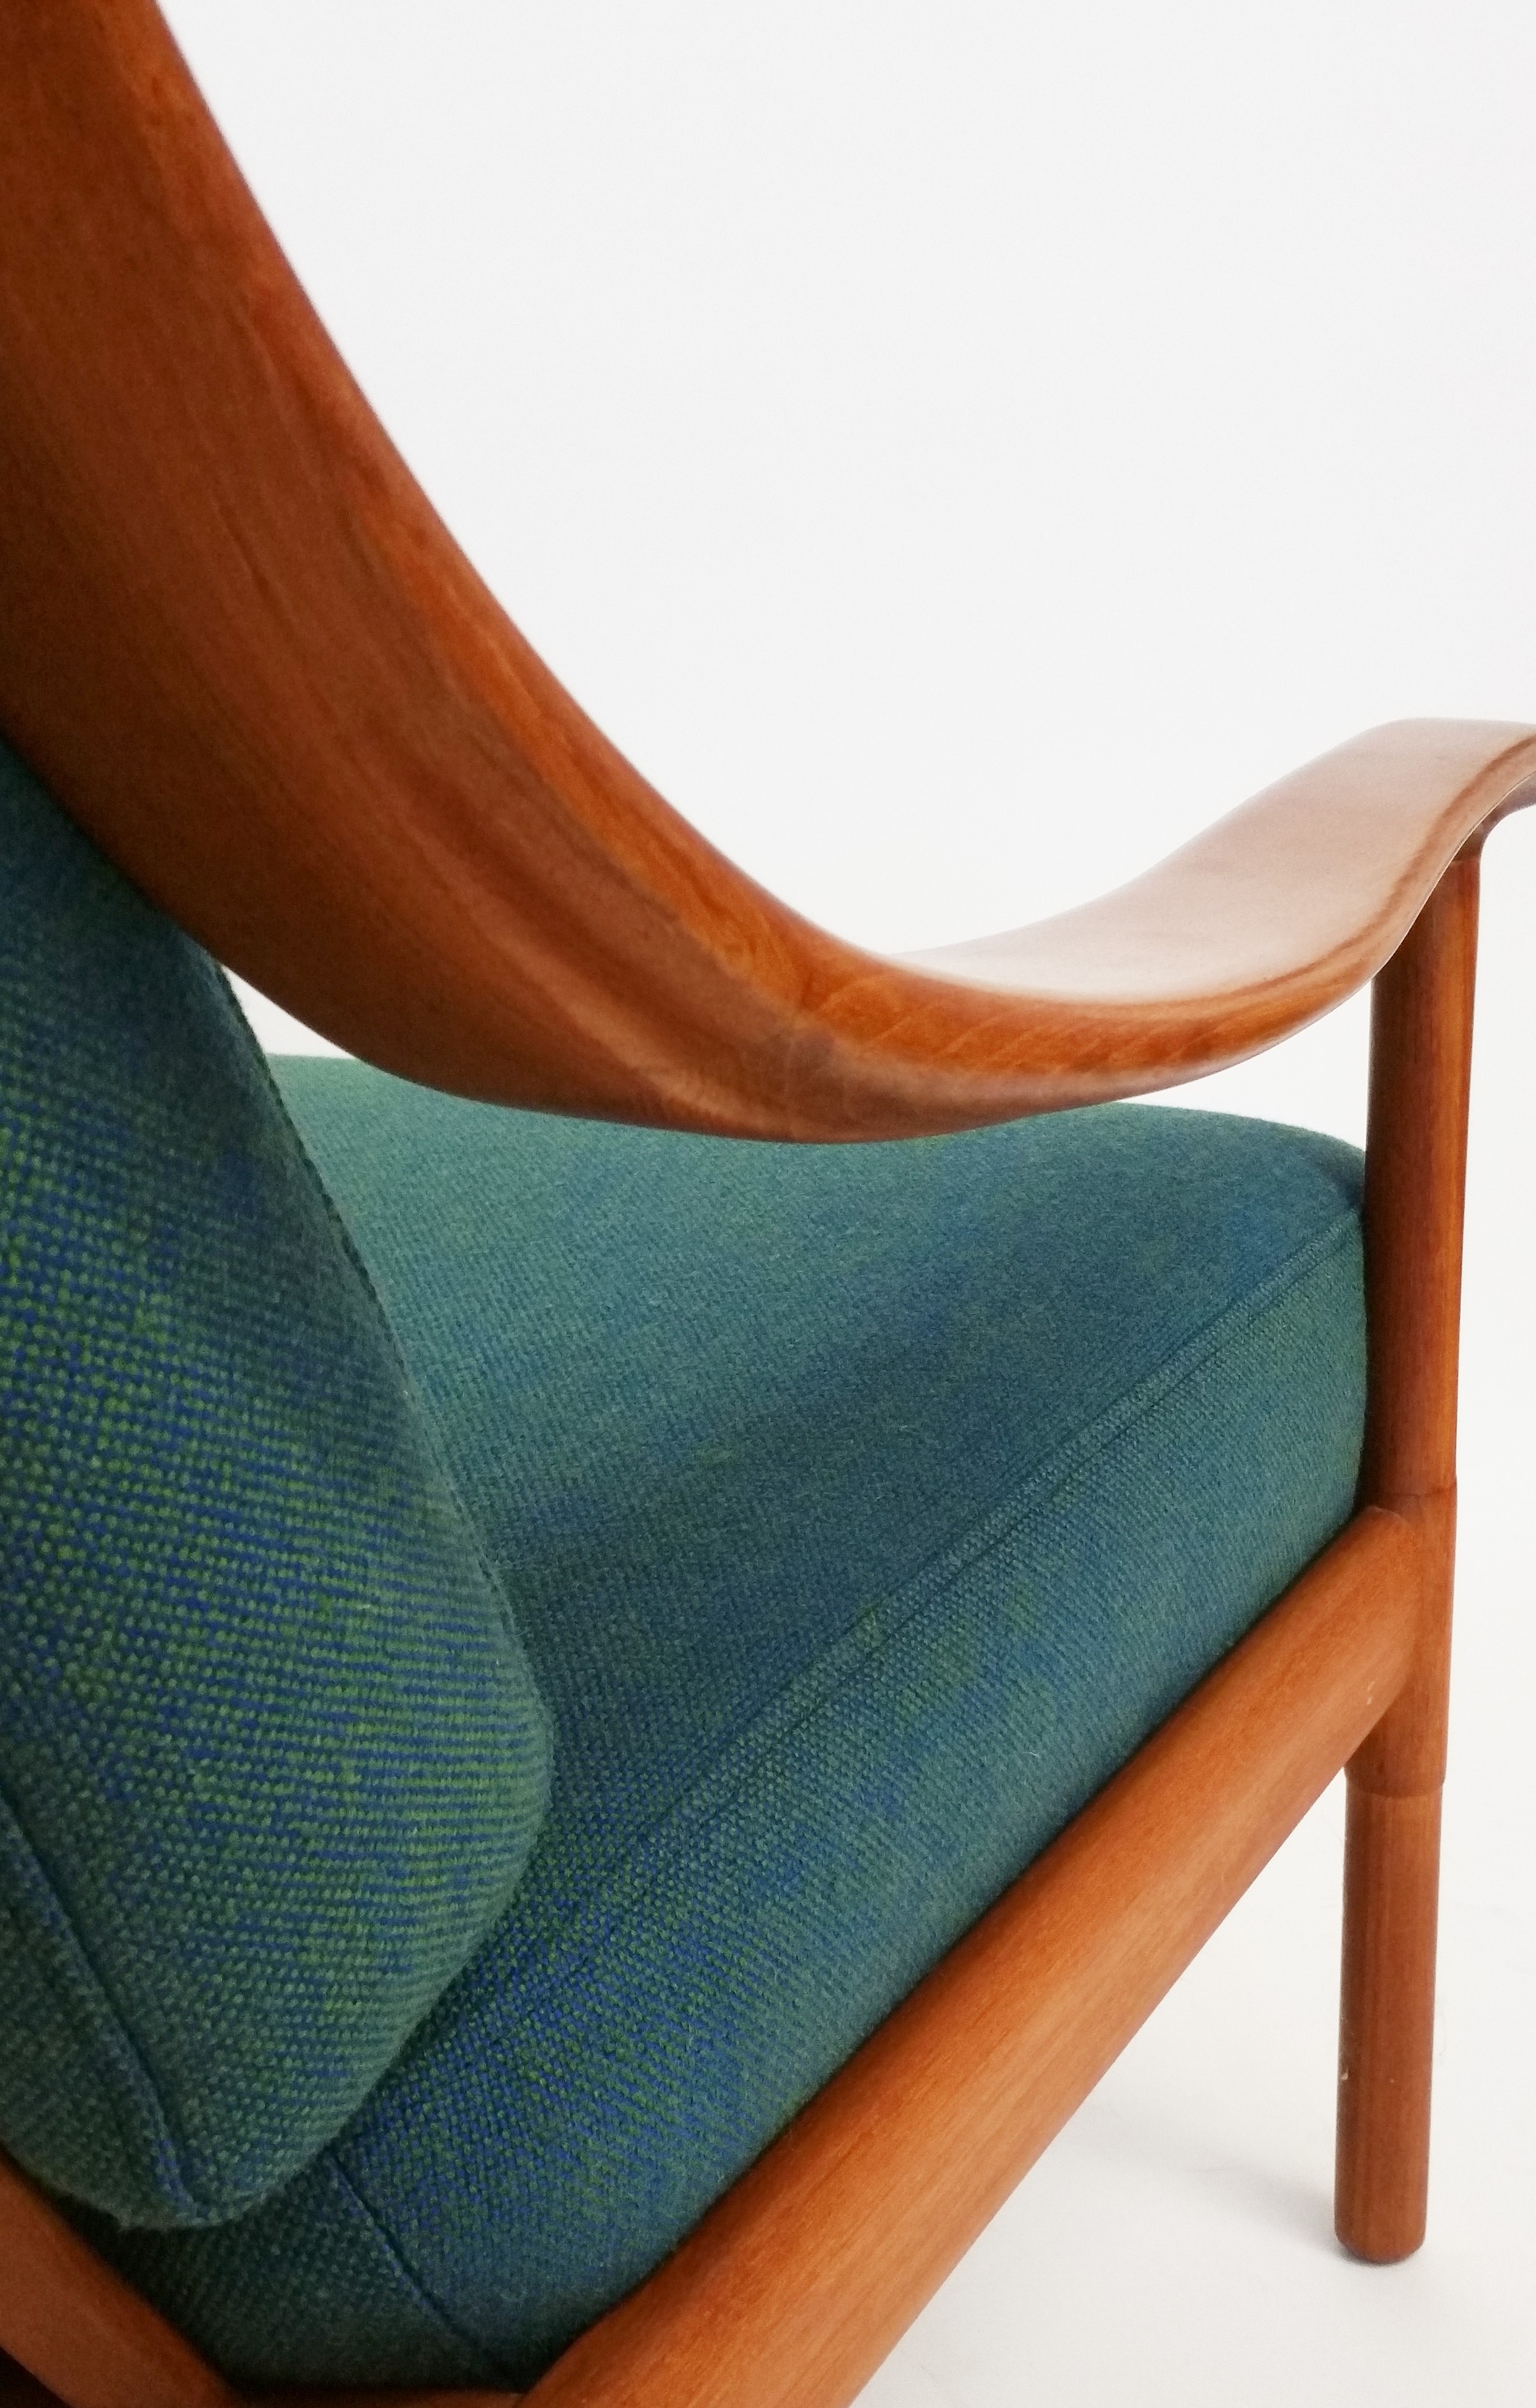 Walter Knoll high back teak lounge chair